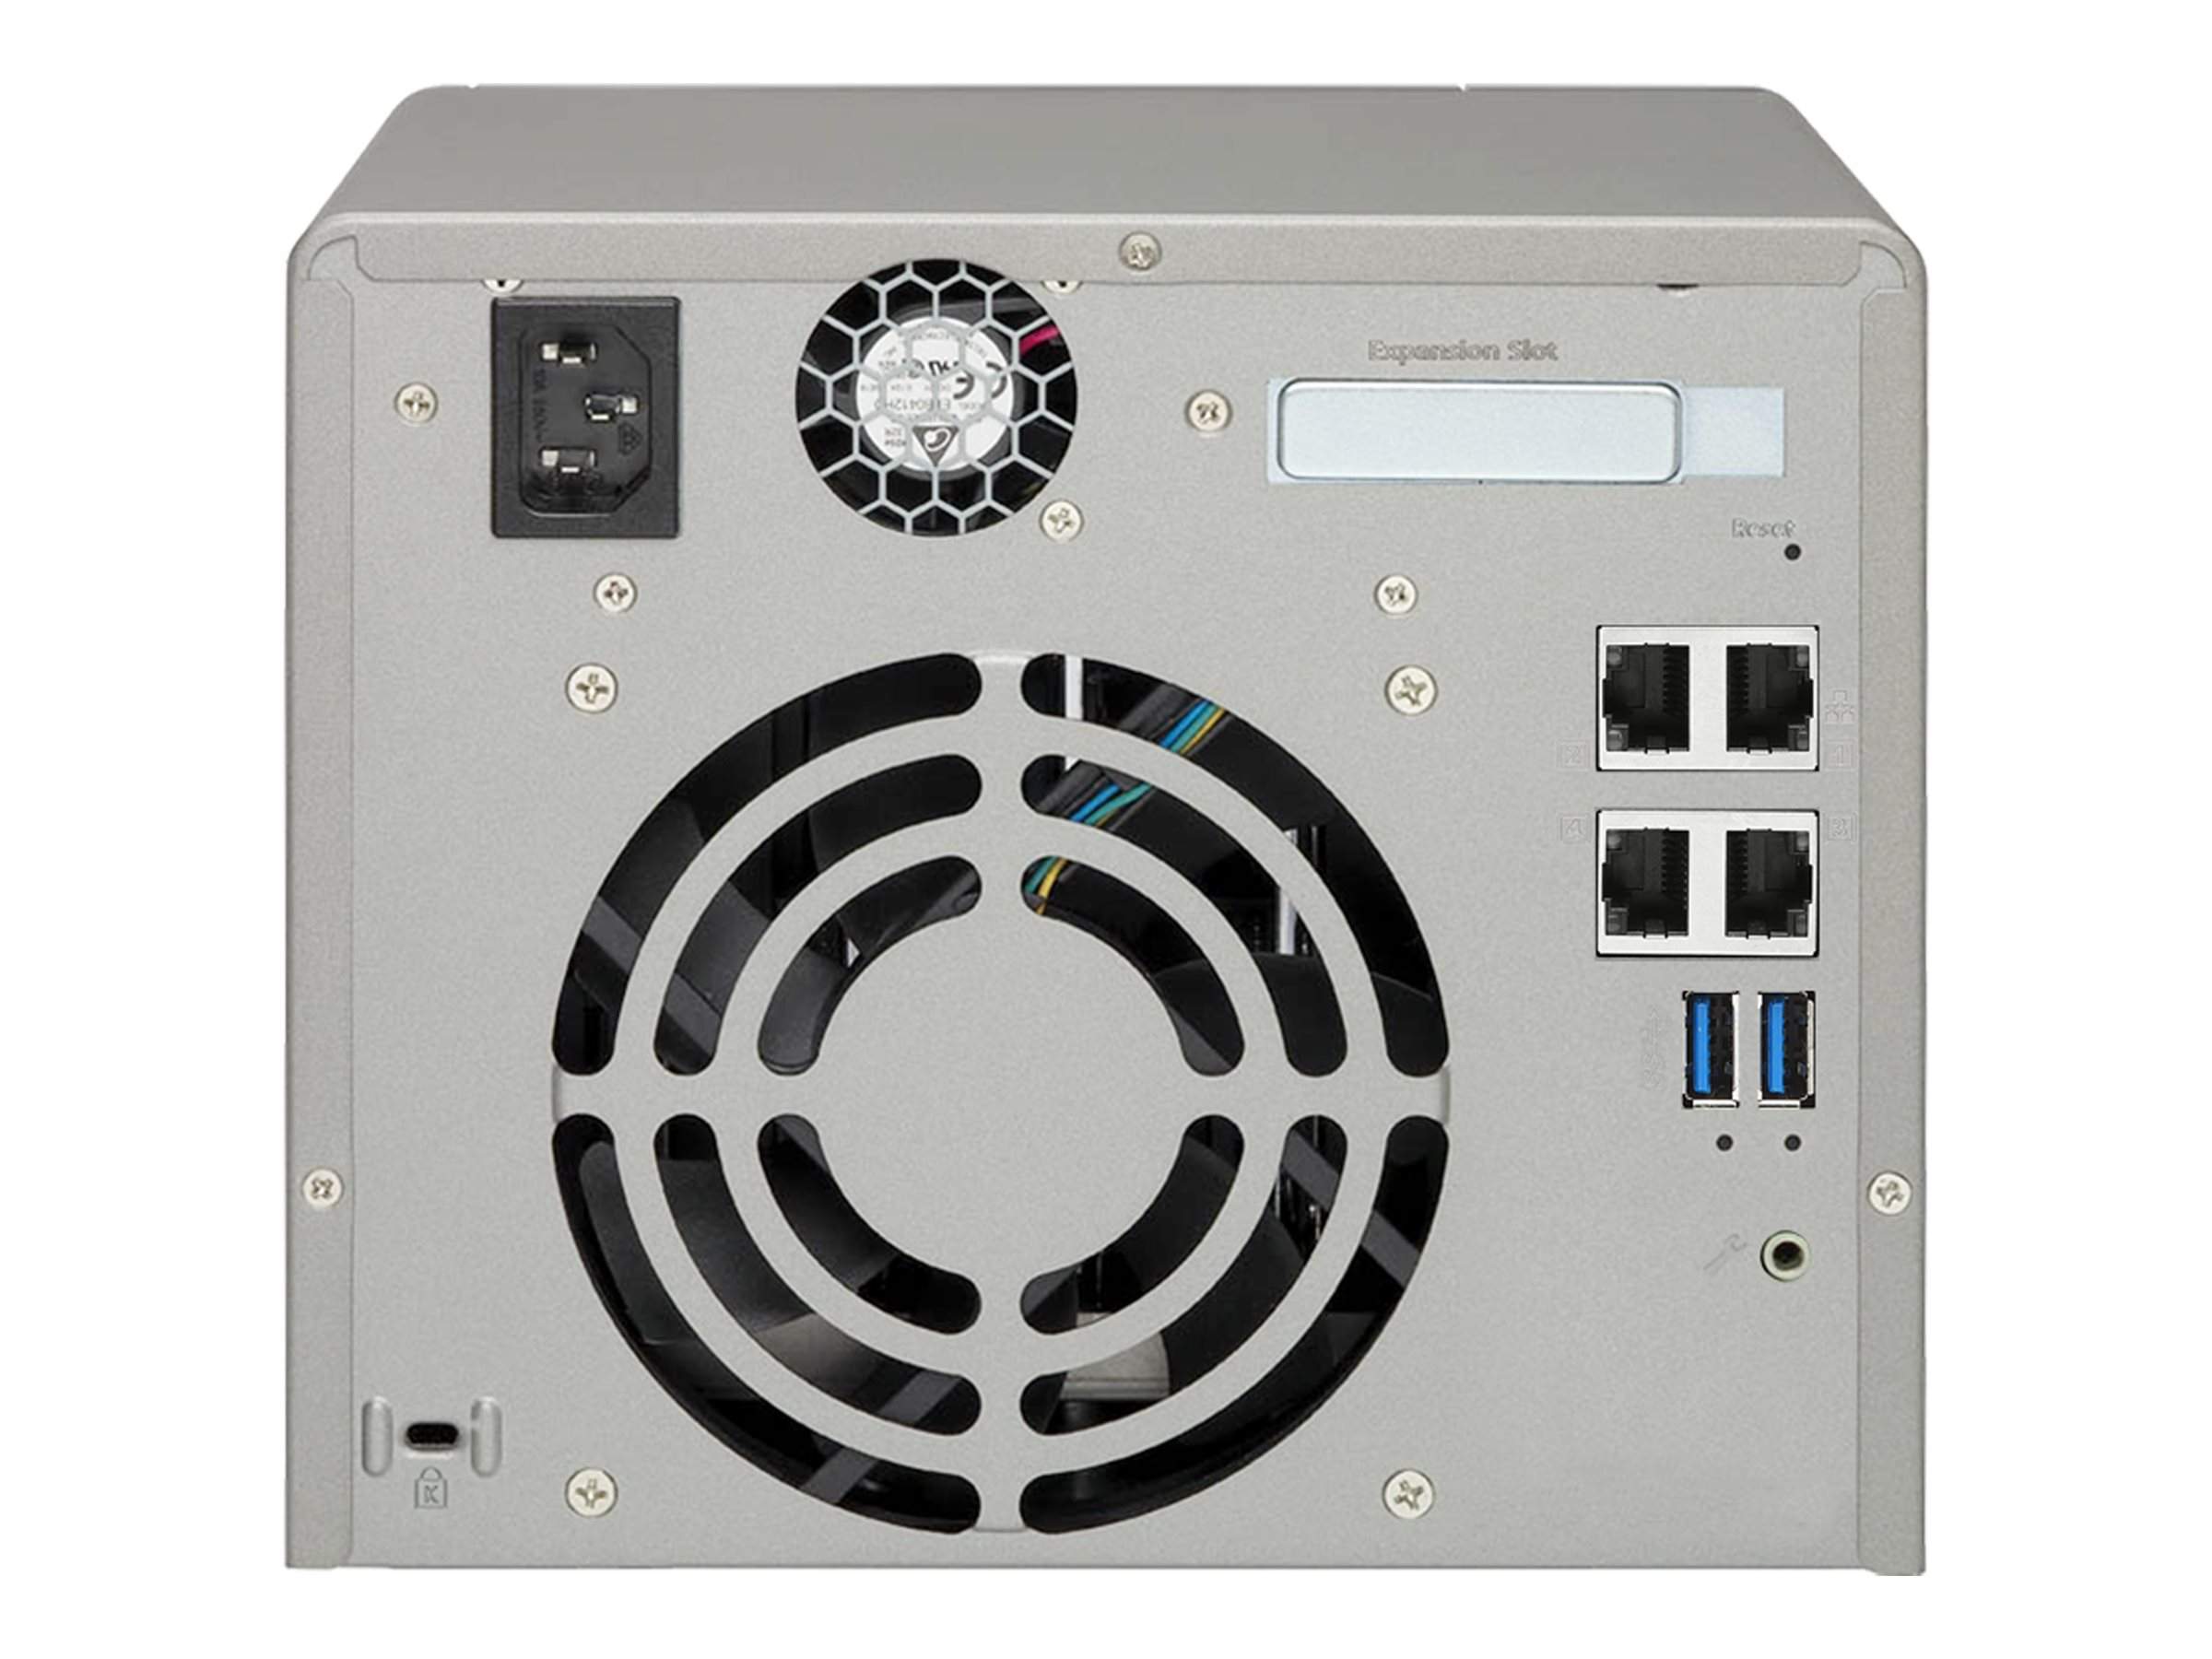 Qnap TS-531P ARMBased NAS w  Hardware Encryption, TS-531P-2G